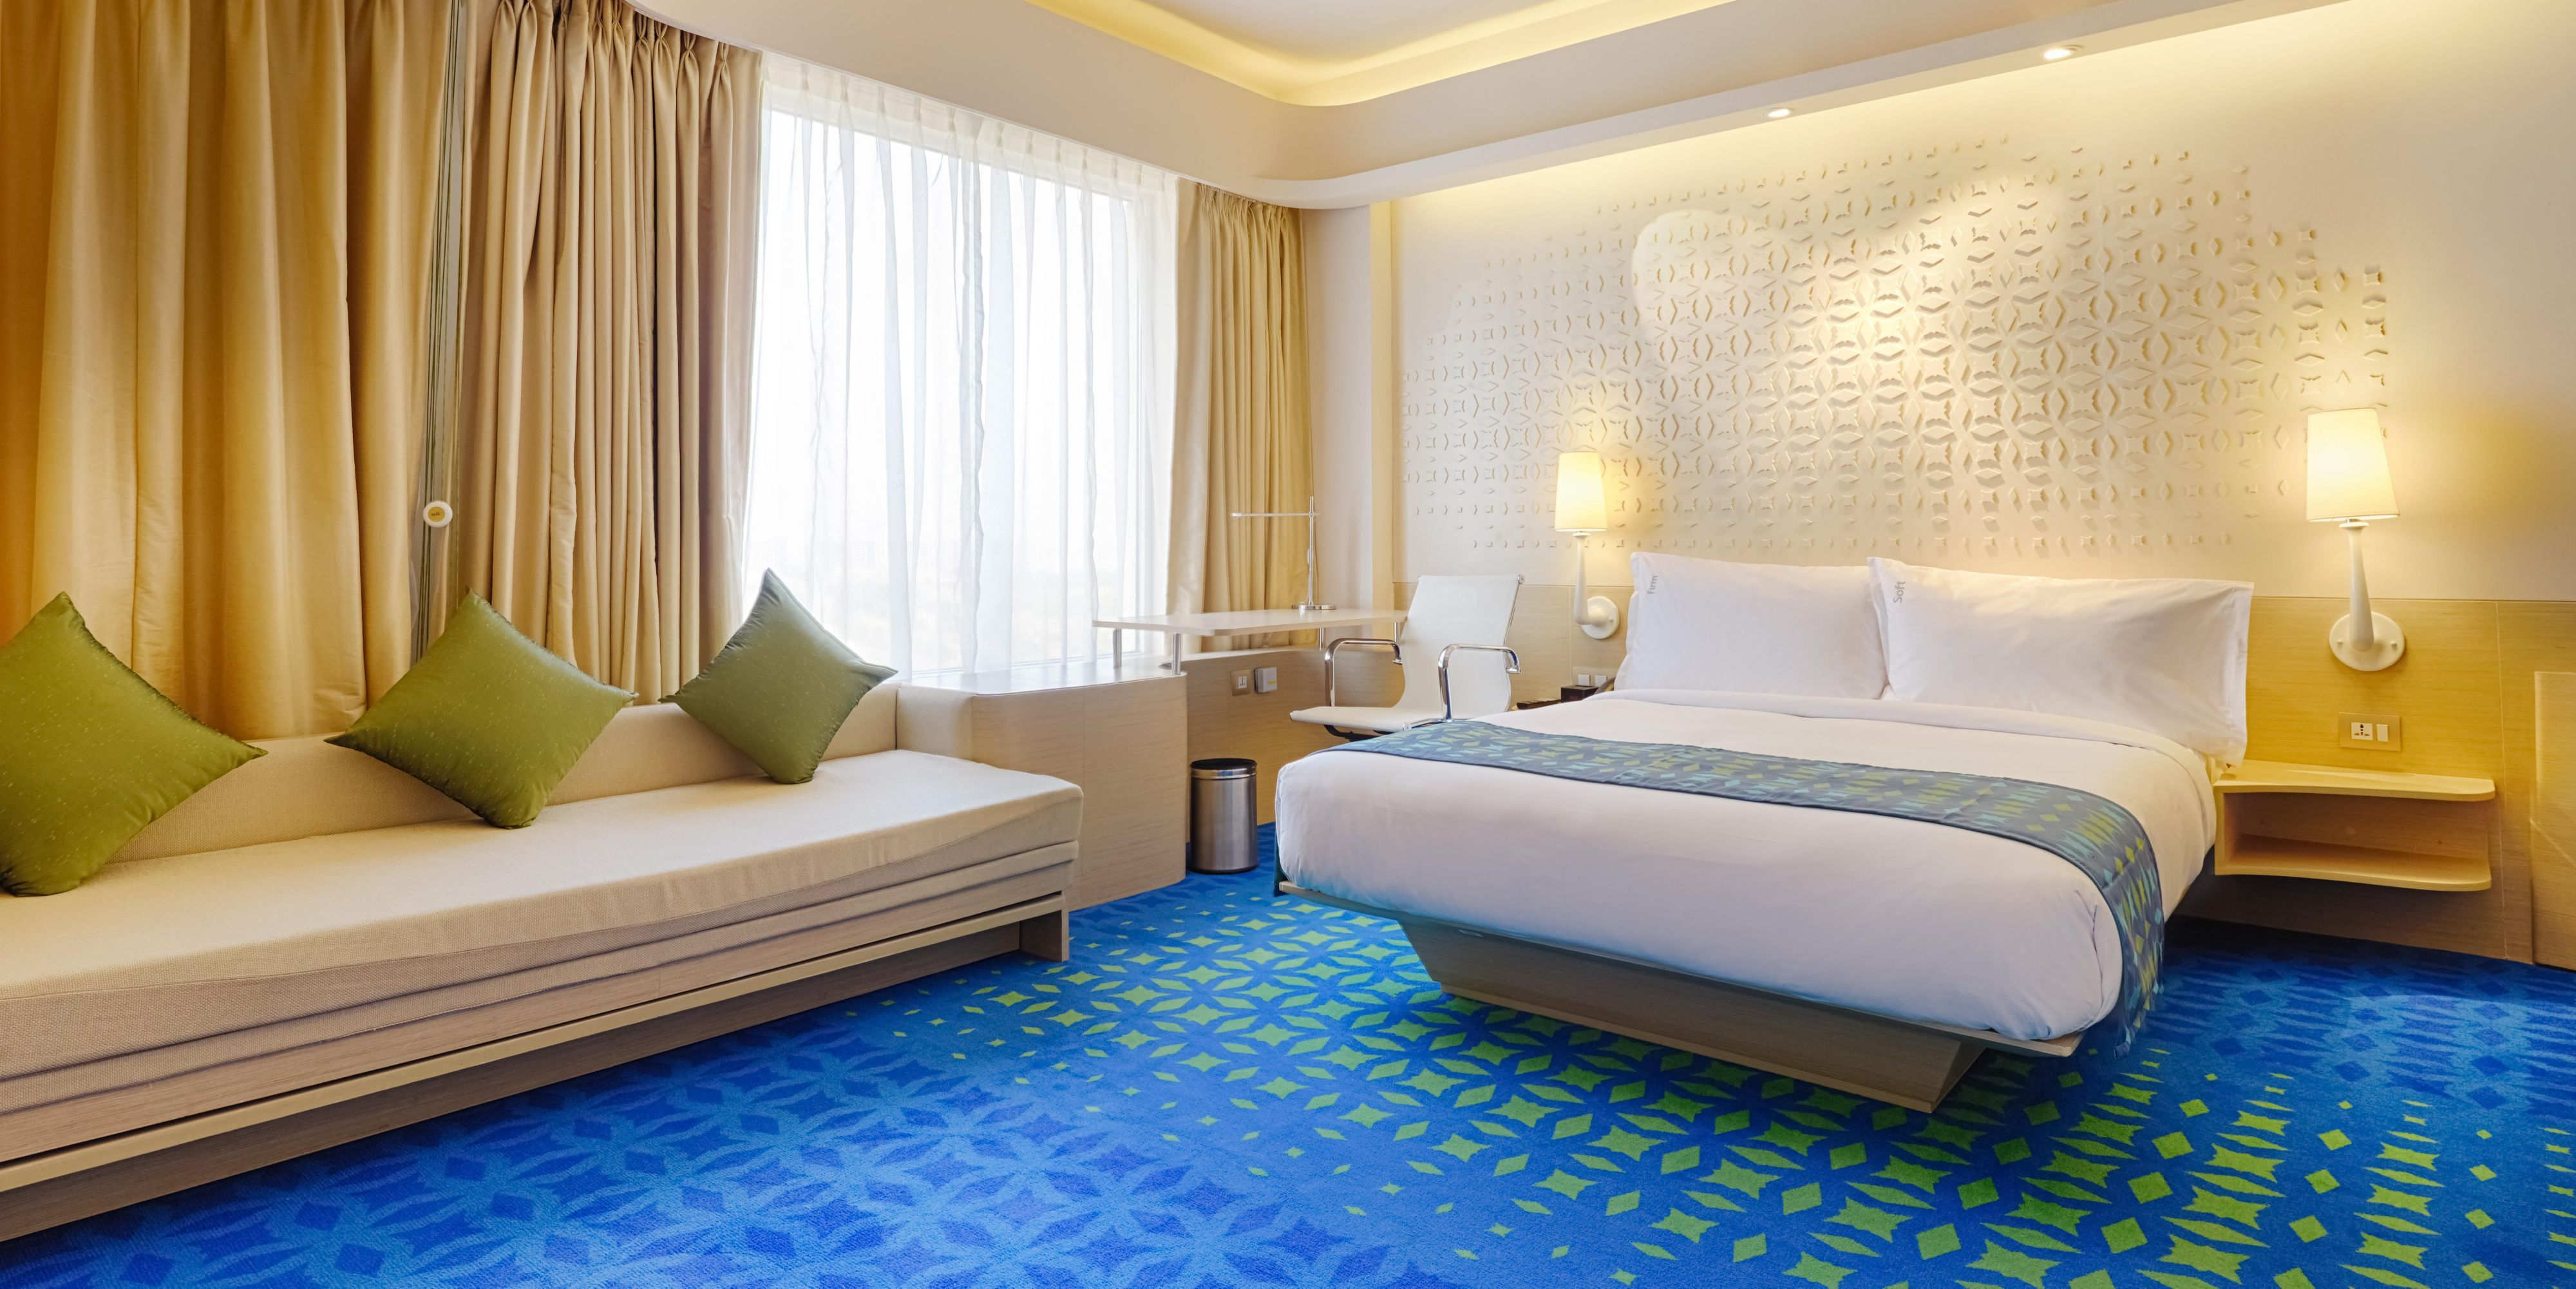 Holiday inn express and suites hyderabad 3670093794 2x1